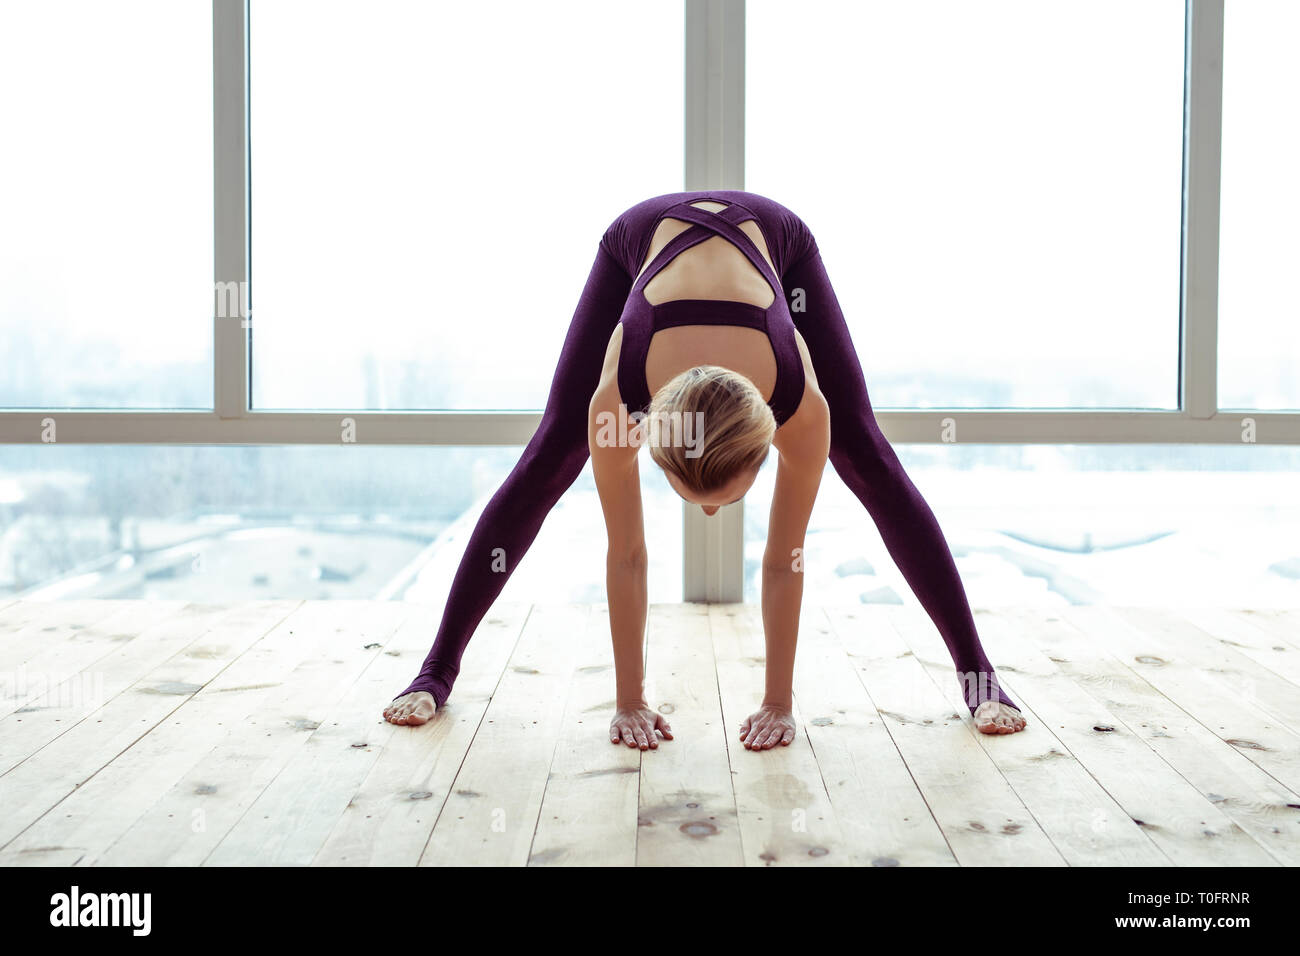 Sportive fit lady bending over on city background - Stock Image